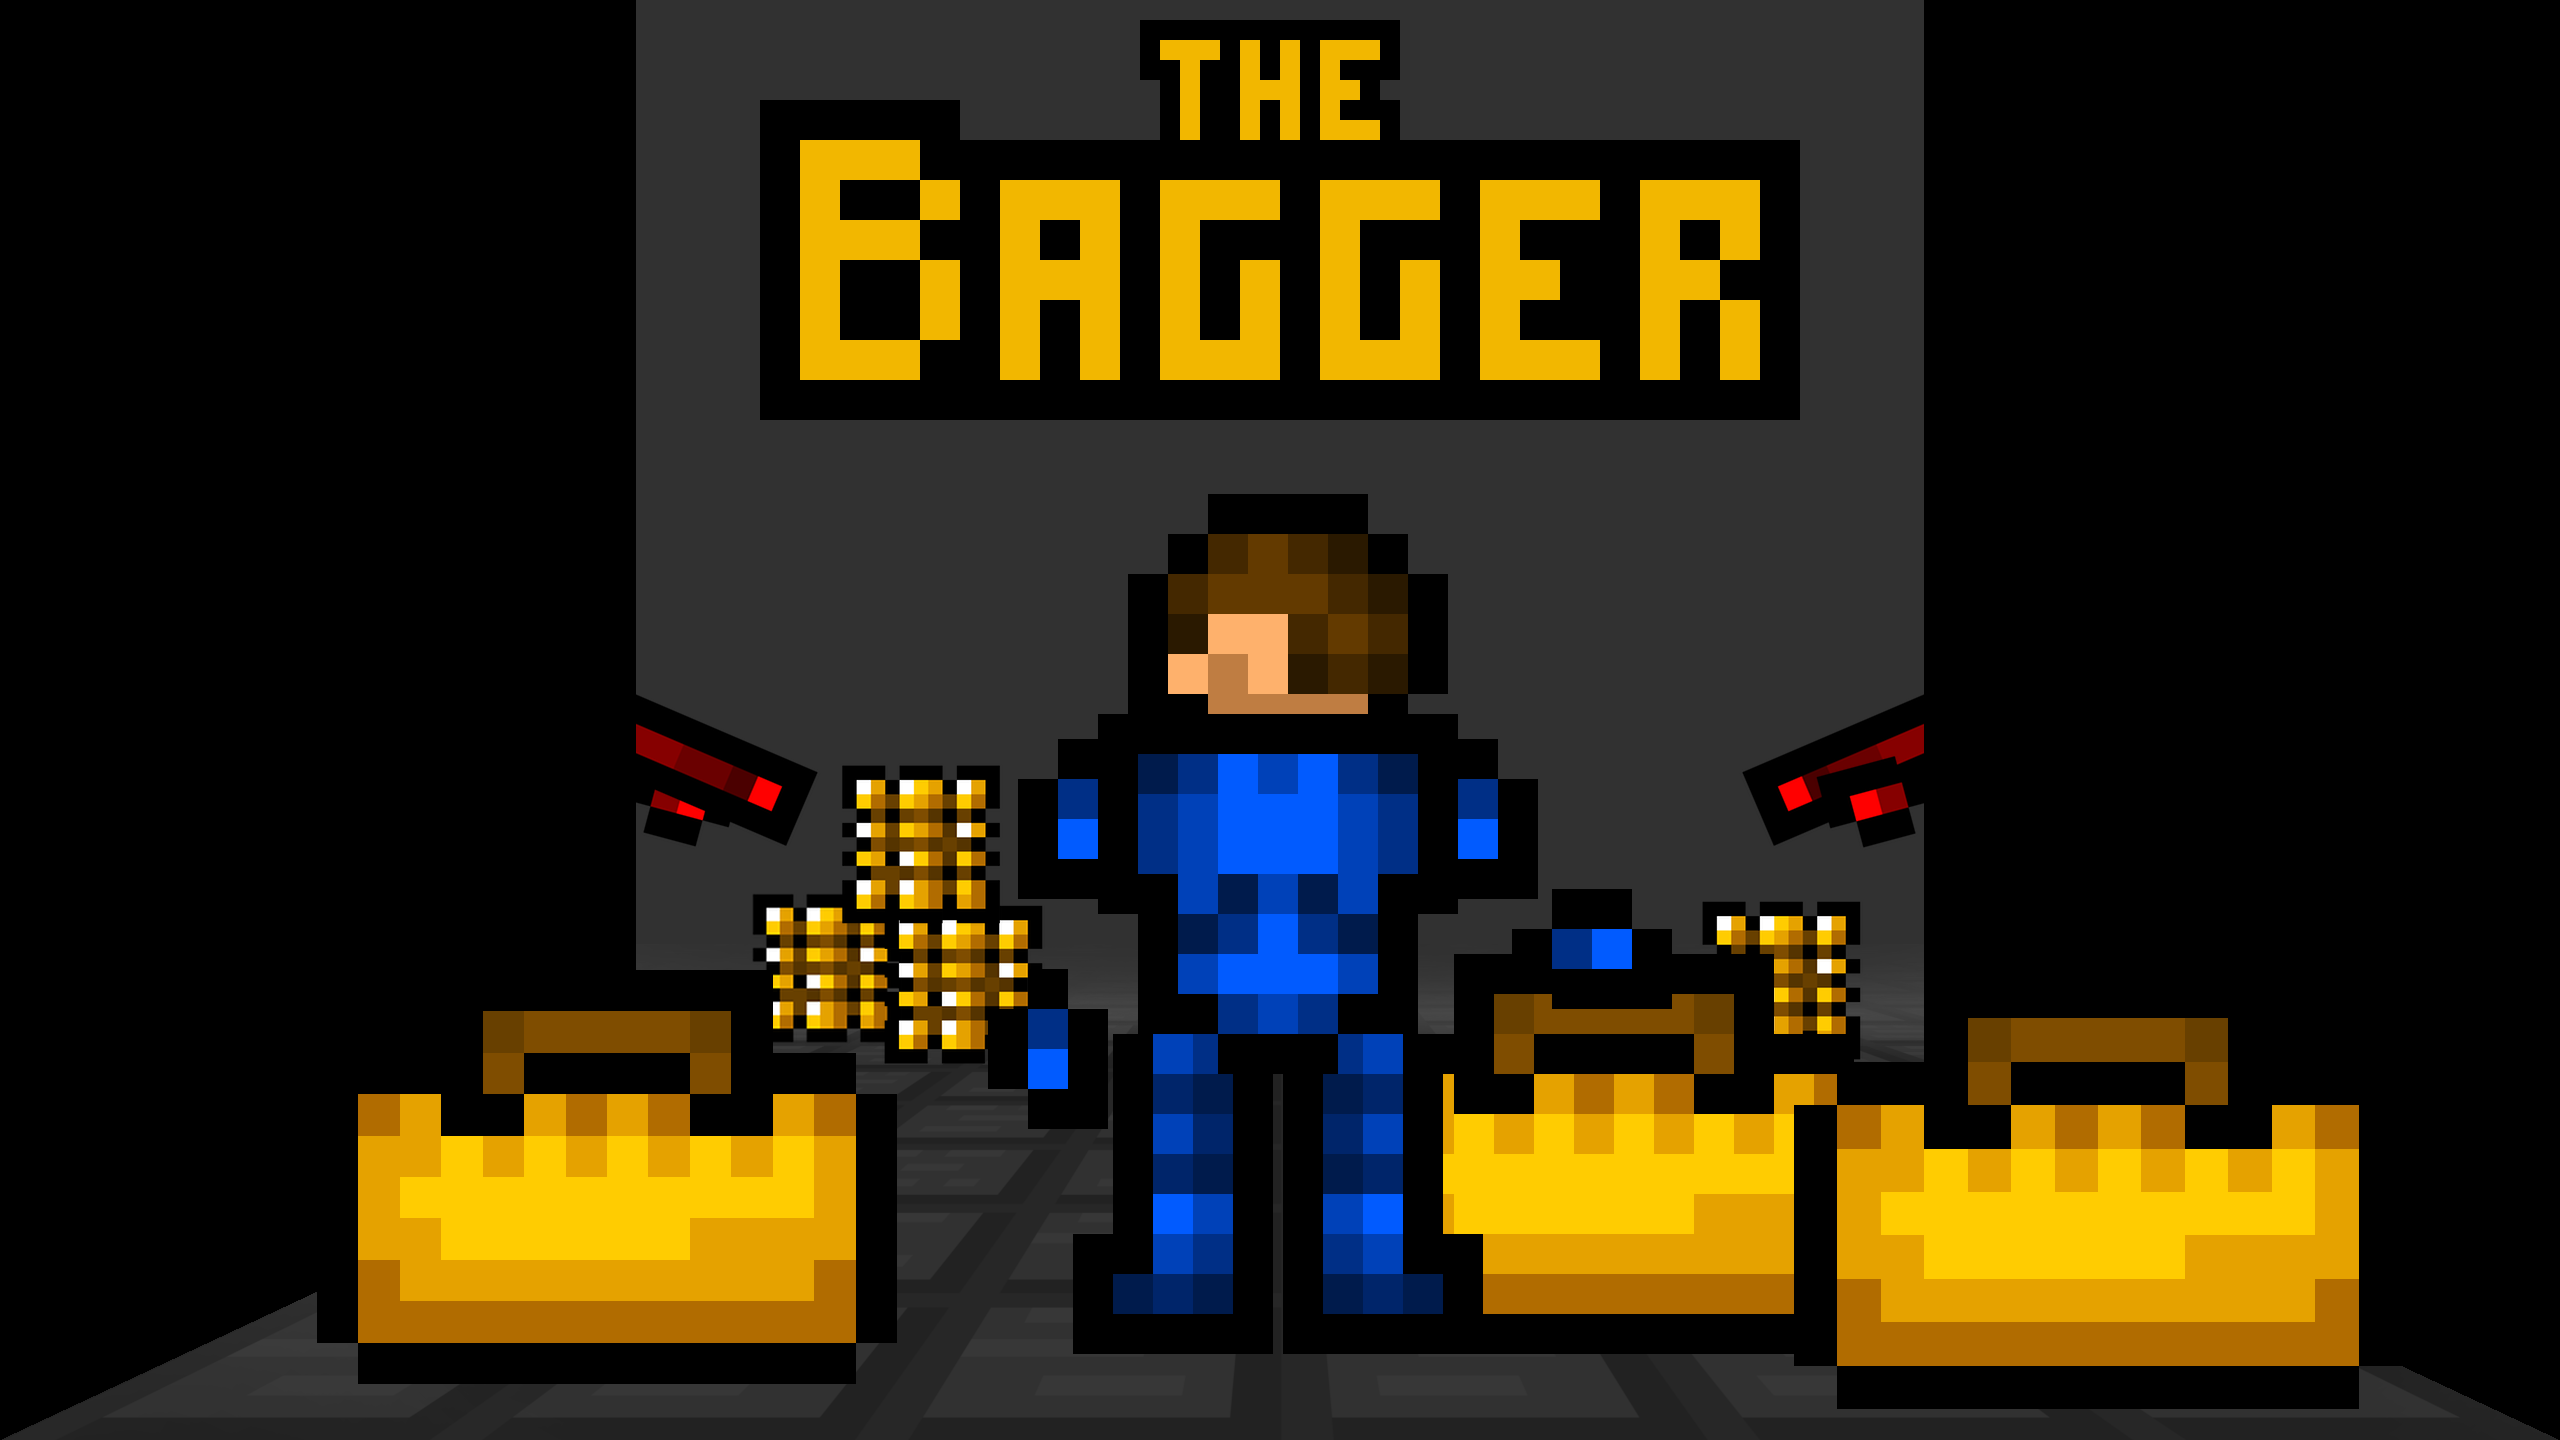 The Bagger